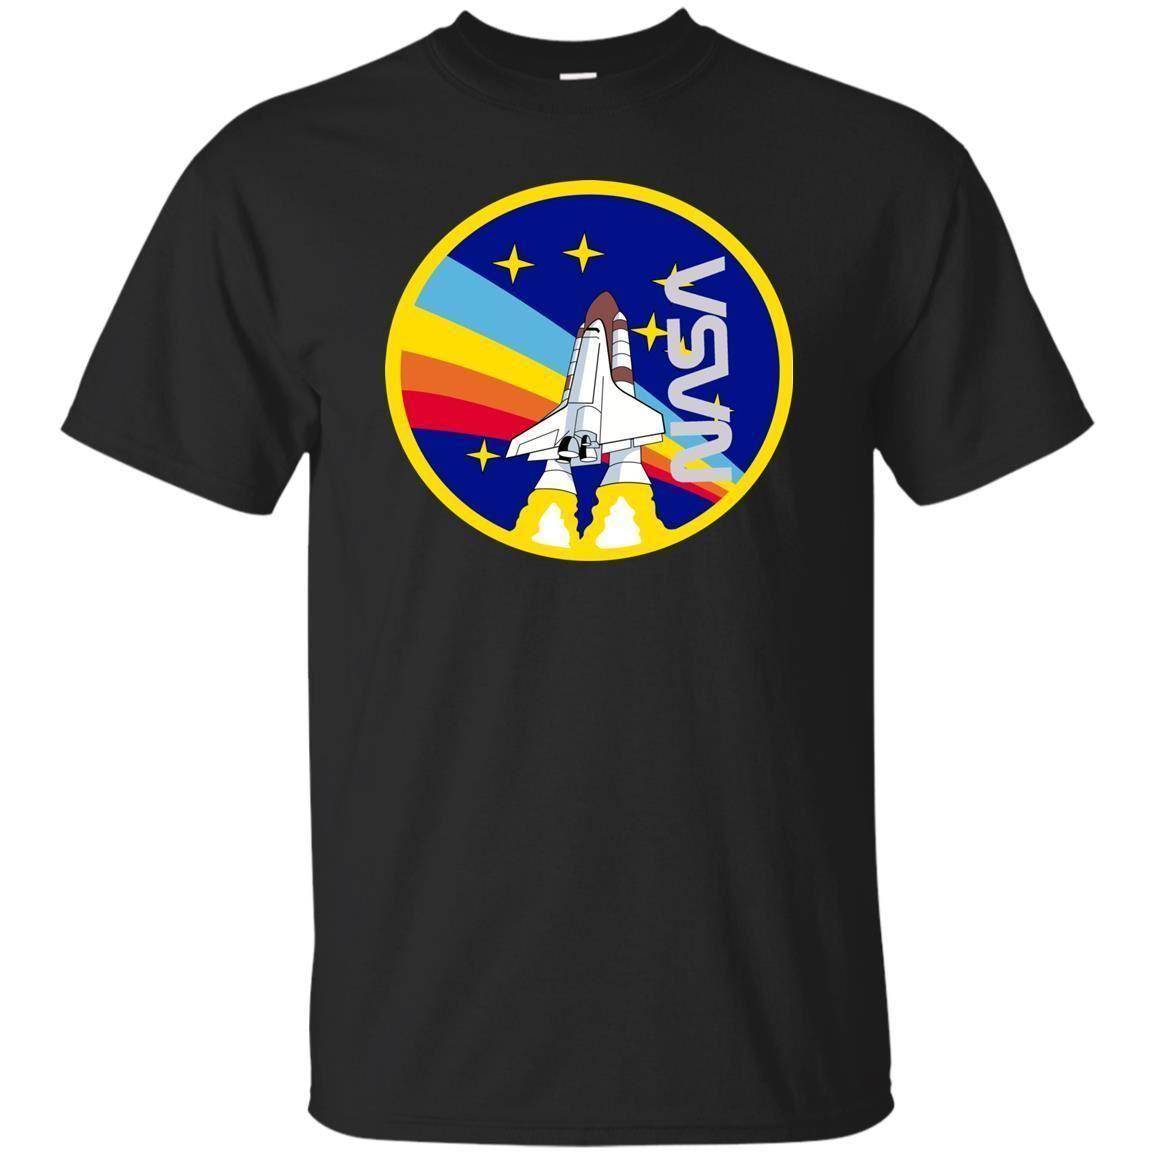 4598289f Nasa Unisex T Shirt NASA Shuttle Launch With Rainbow Graphic Cool Vintage S  3XL Shop For T Shirts Online T Shirt With A T Shirt On It From  Joyfulandhappy57, ...